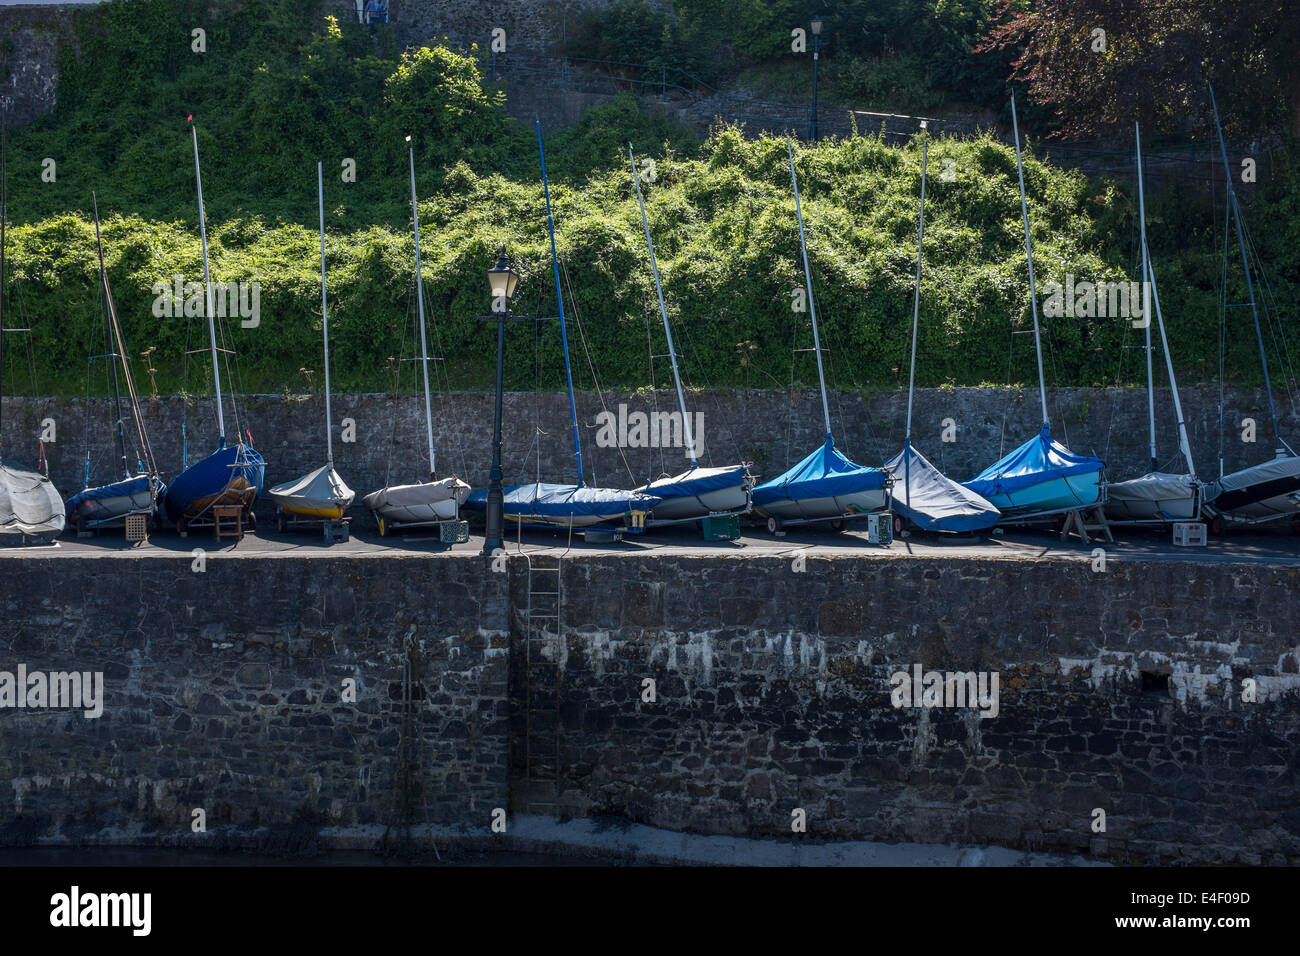 Sail boats on a harbour wall - Stock Image